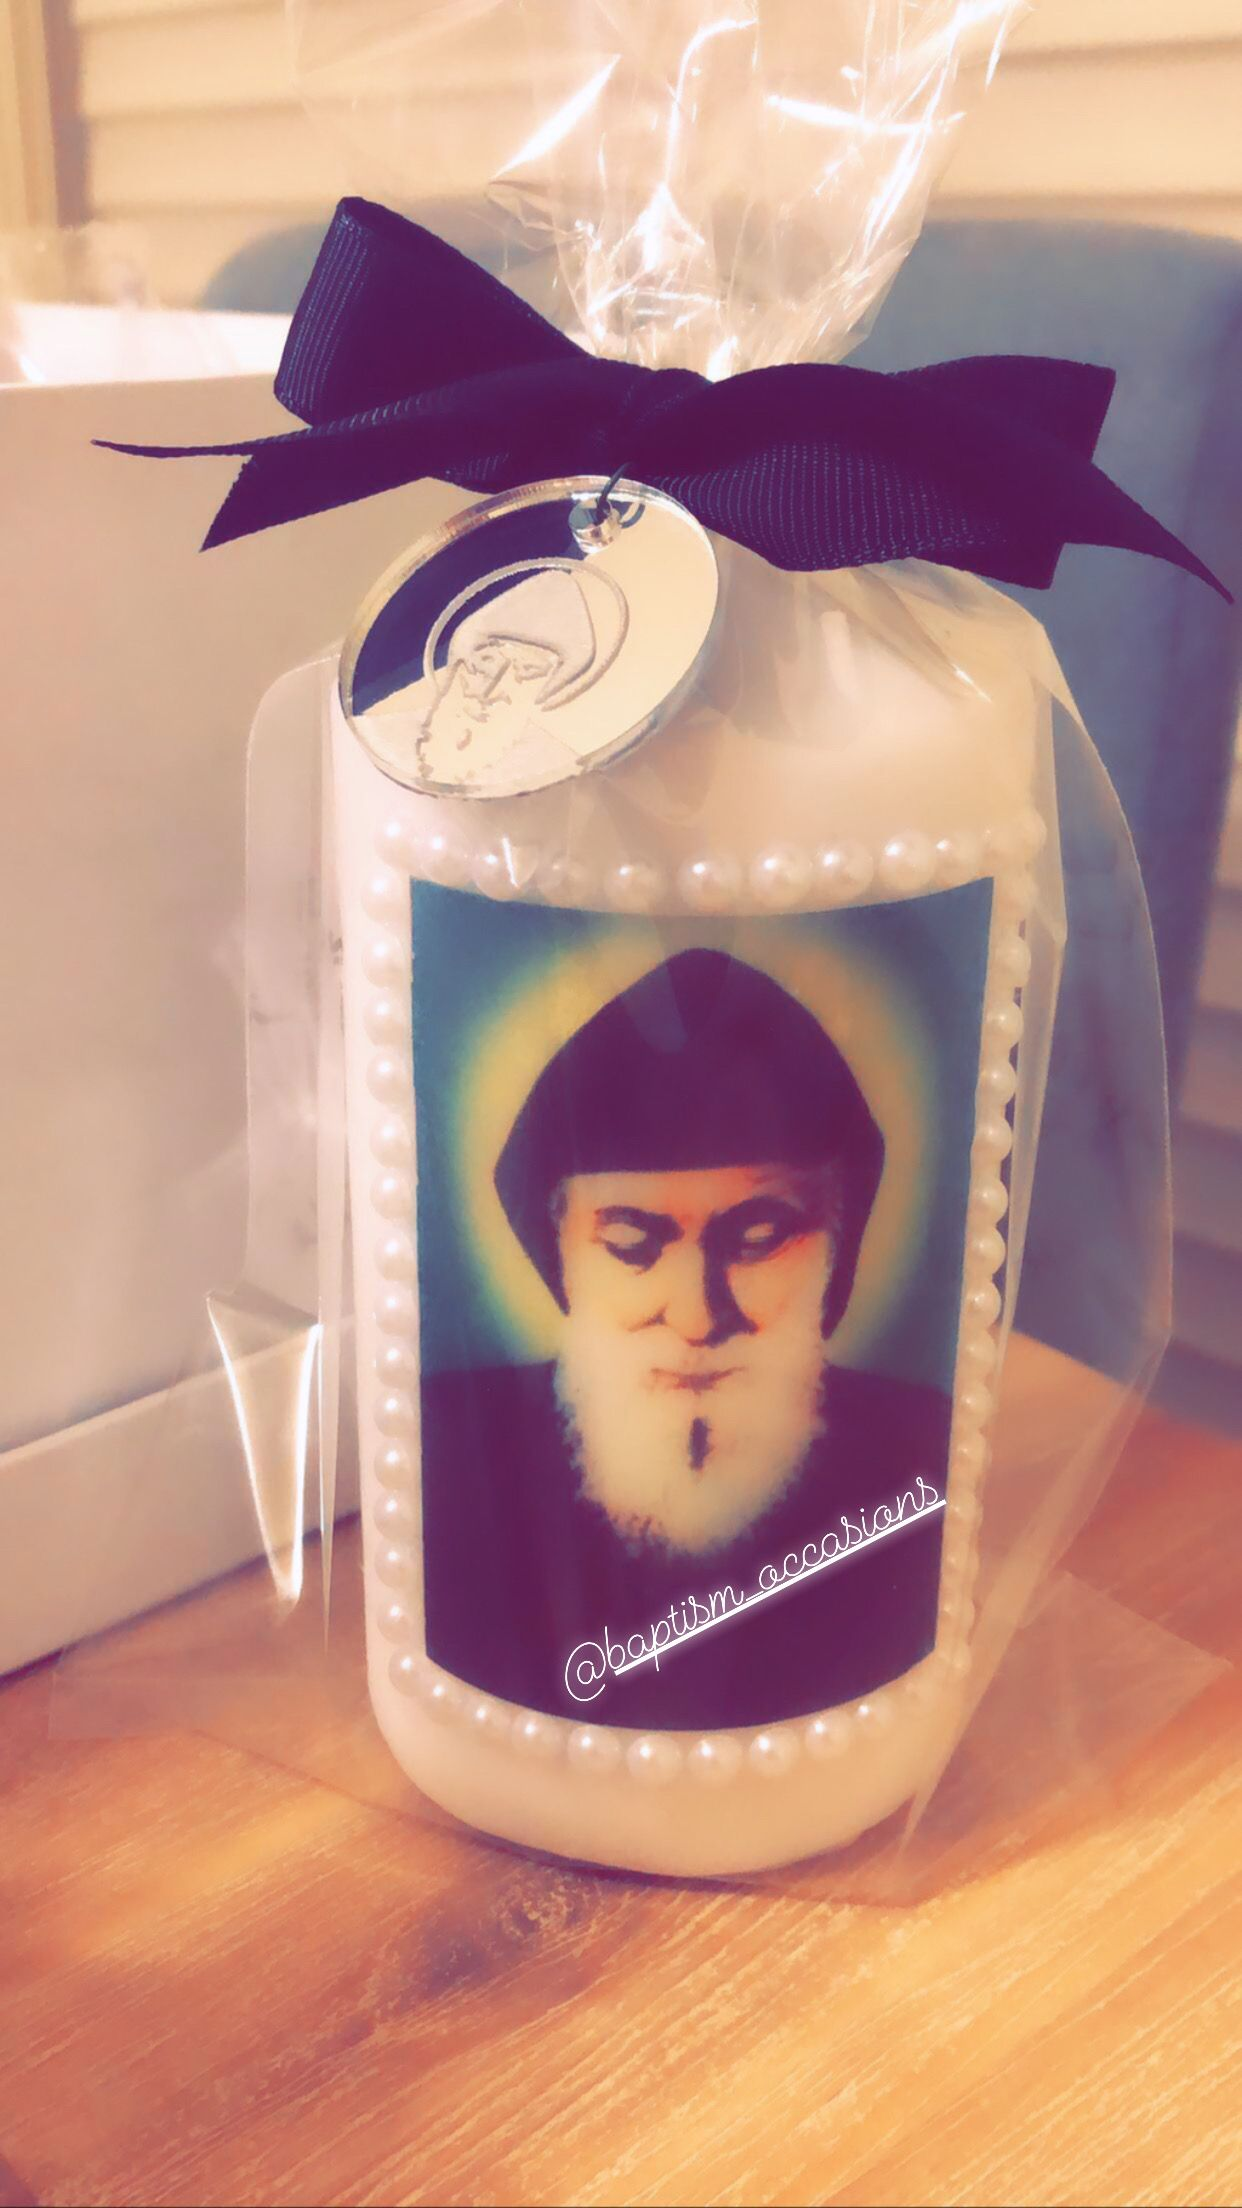 St Charbel in 2020 Personalized candles, Baptism favors